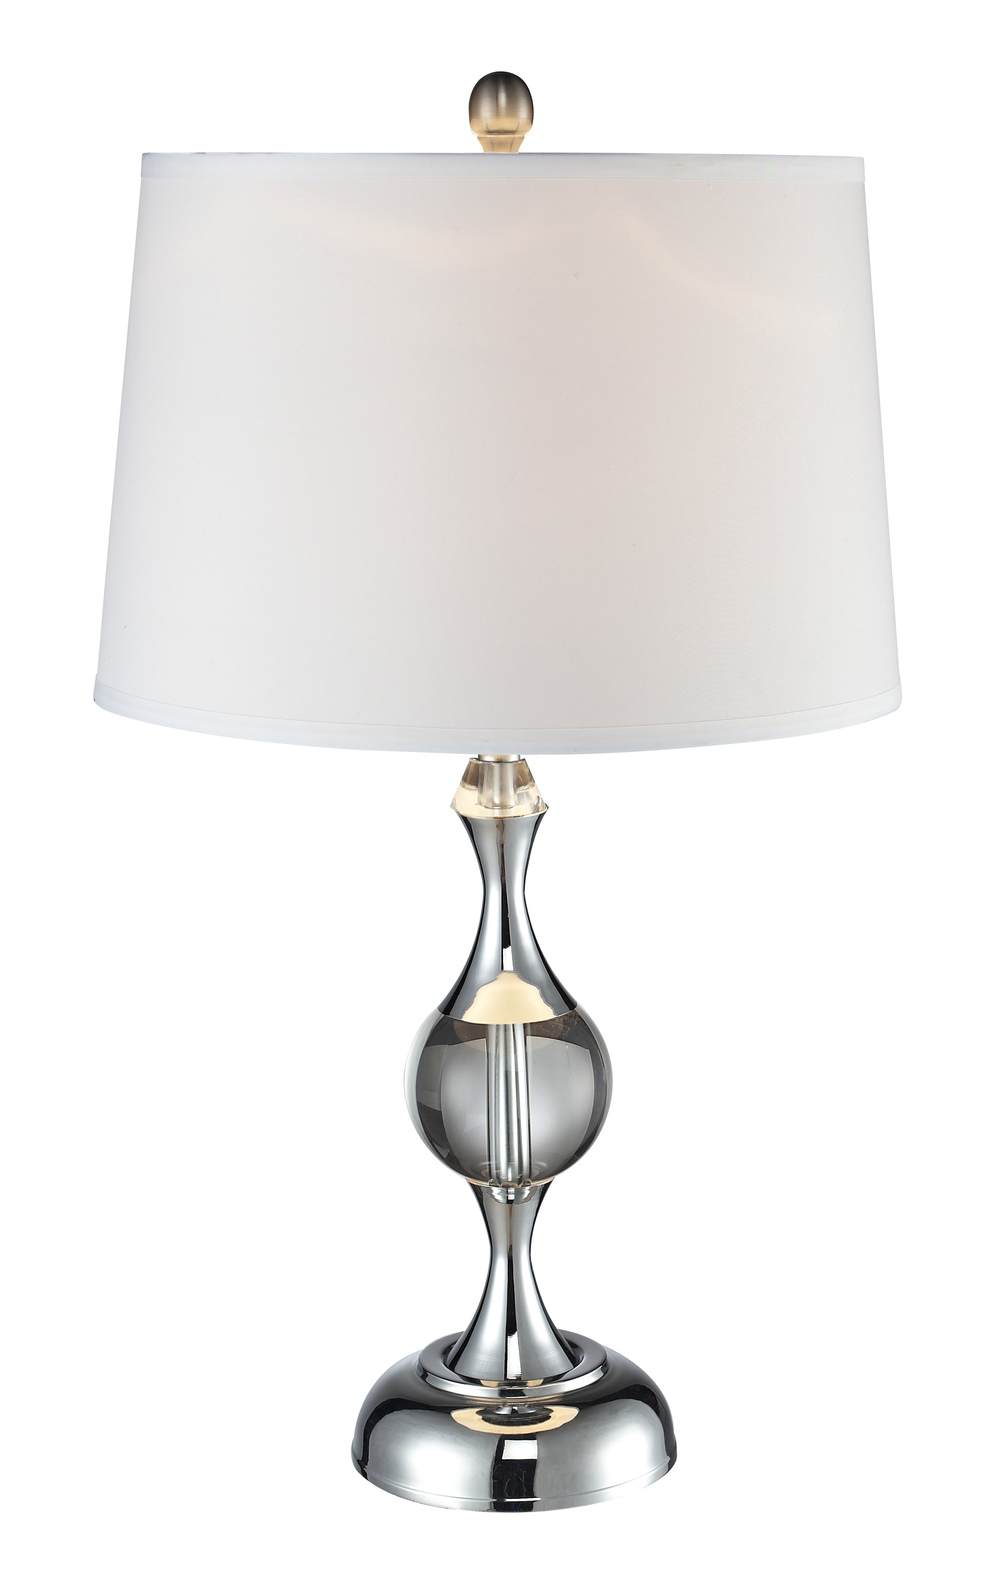 10005 | LYON TABLE LAMP